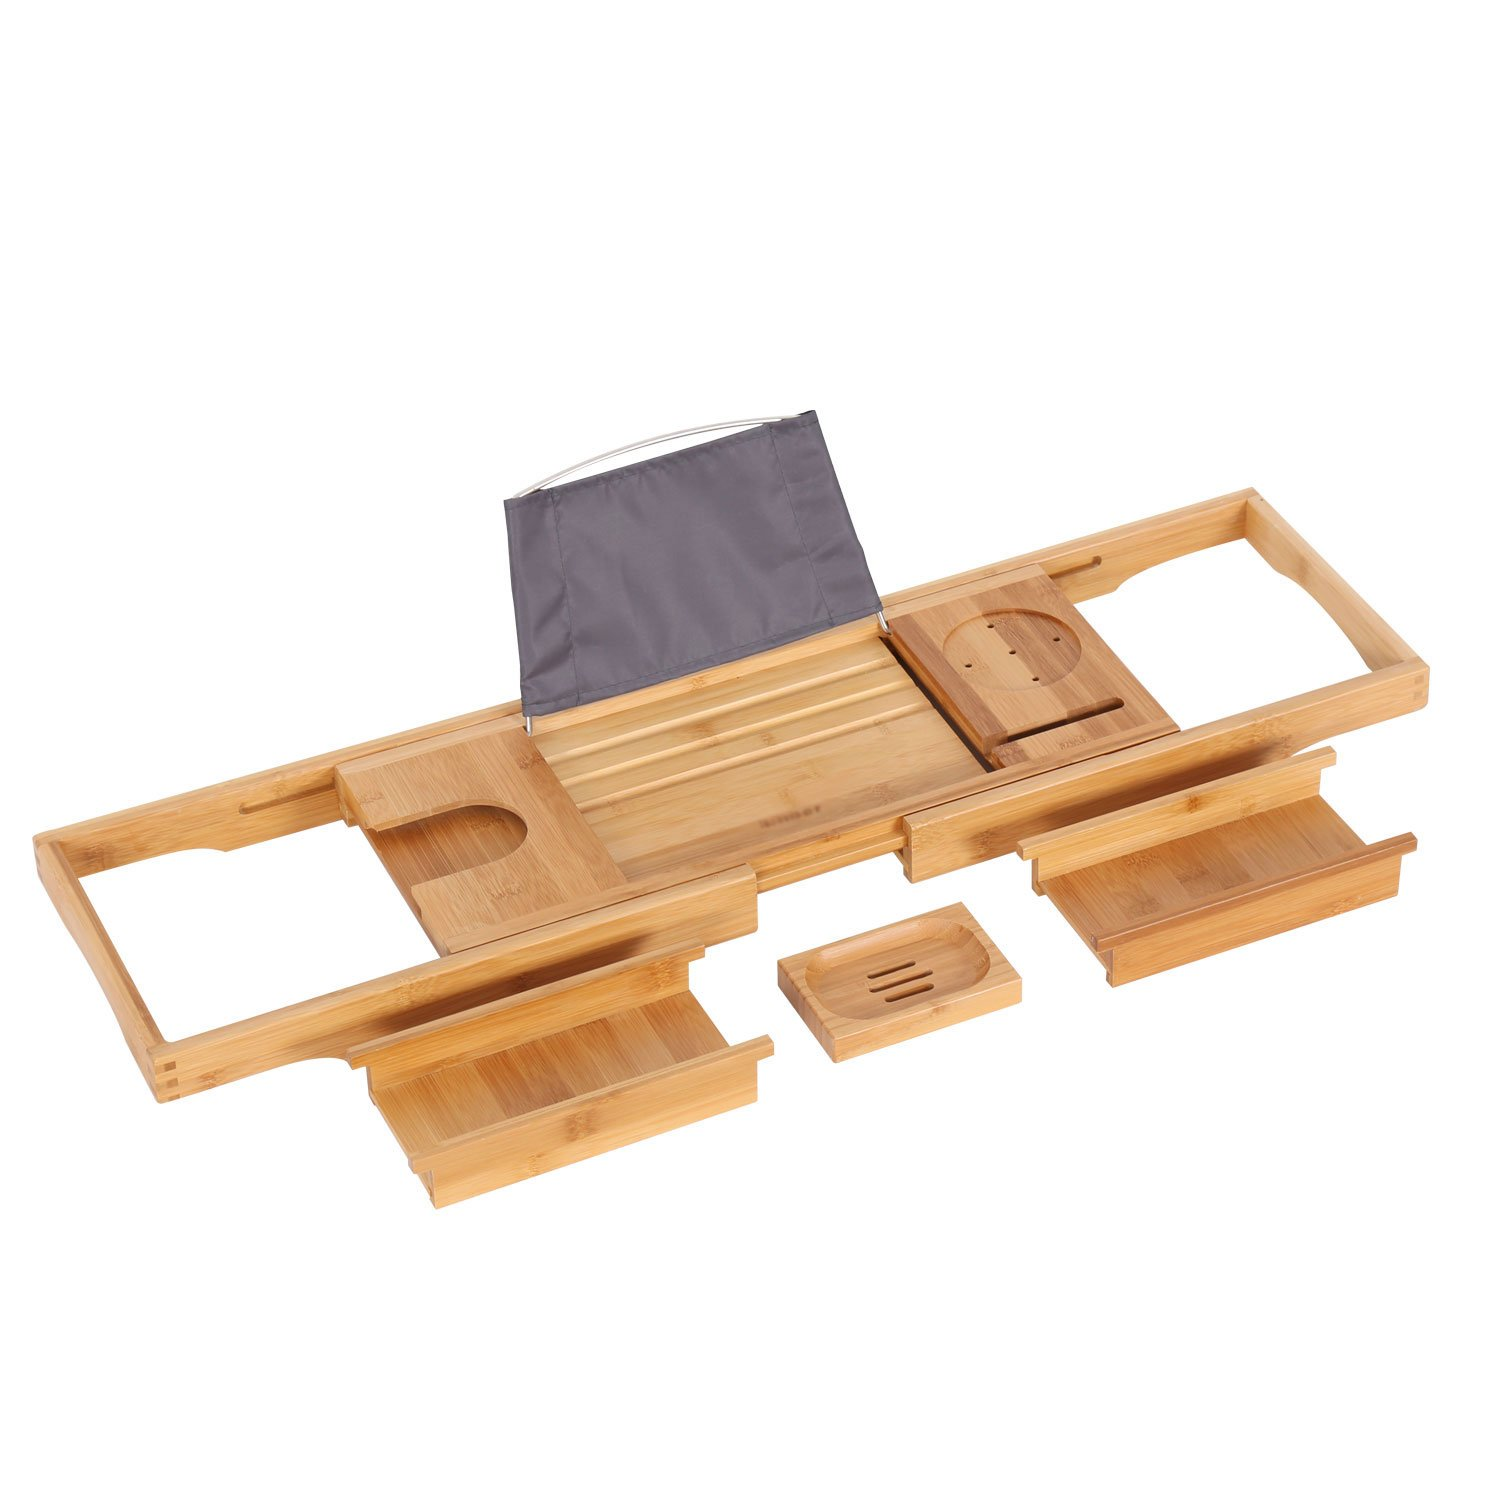 Peach Tree Bathtub Caddy Bamboo Bathtub Tray, Natural BAMBOO, With Extending Sides, Reading Rack, Tablet Holder, Cellphone Tray & Integrated Wine Glass Holder, Soap Holder